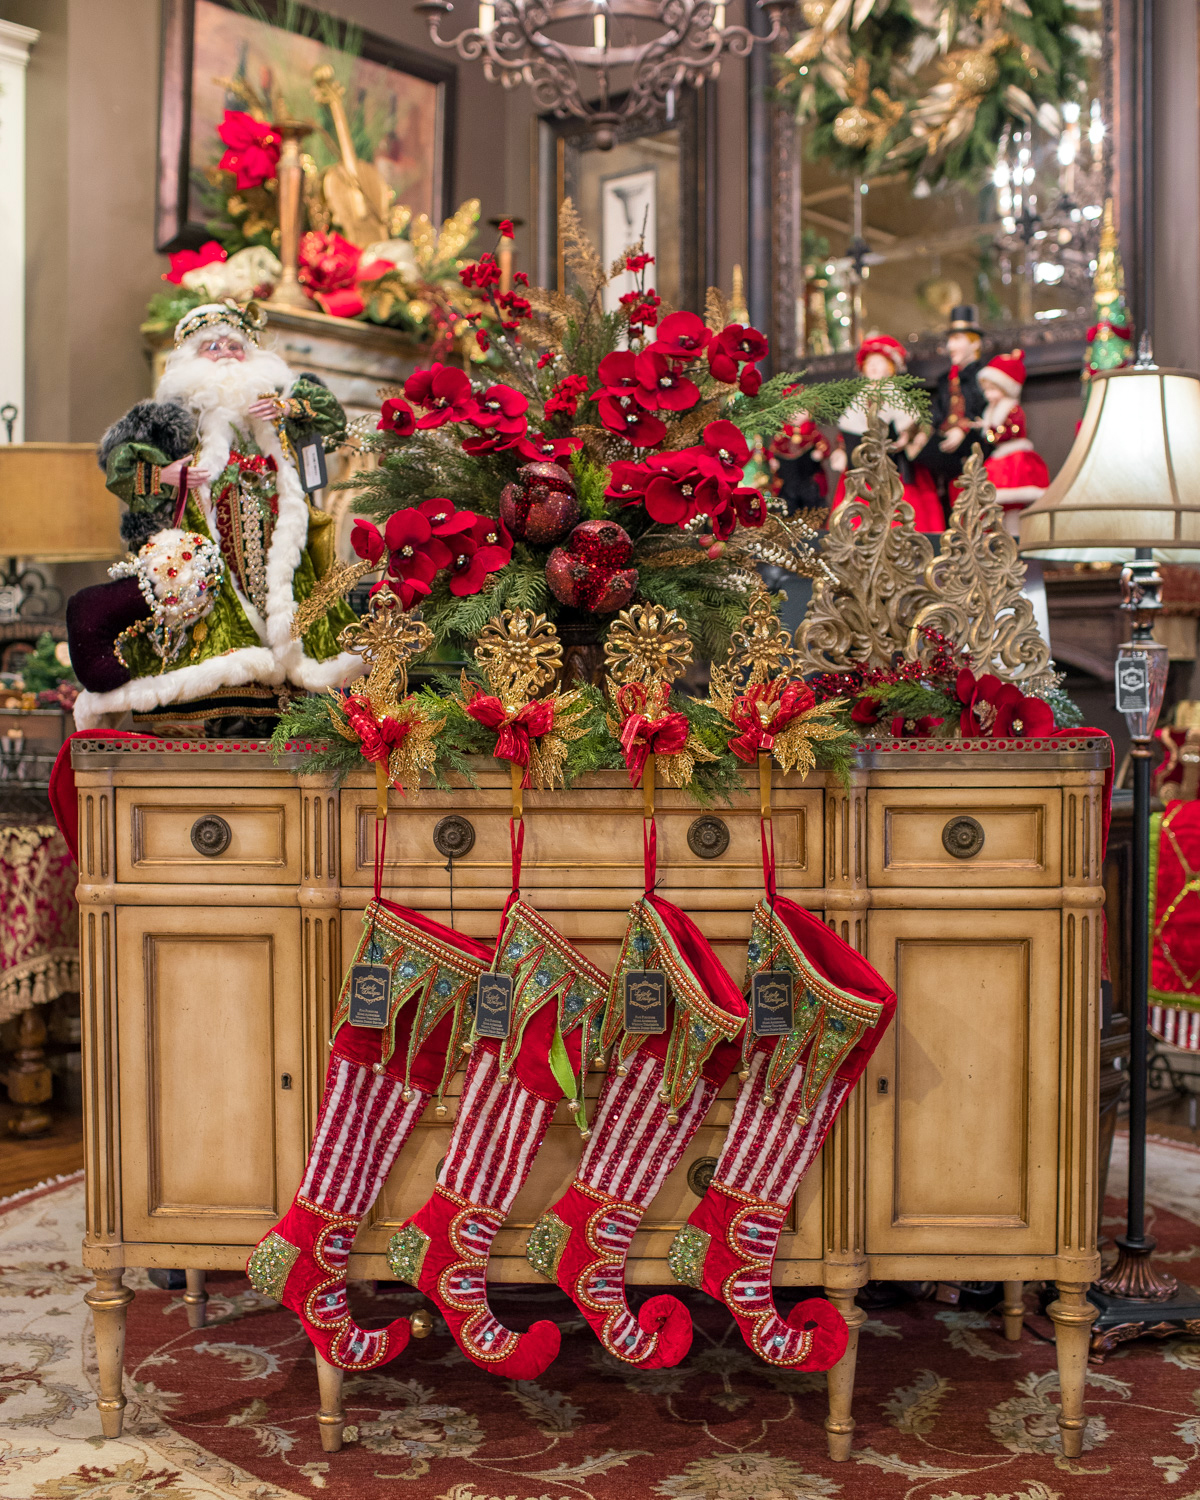 Luxury christmas decoration for the home - Luxury Christmas Floral Arrangements And Decor